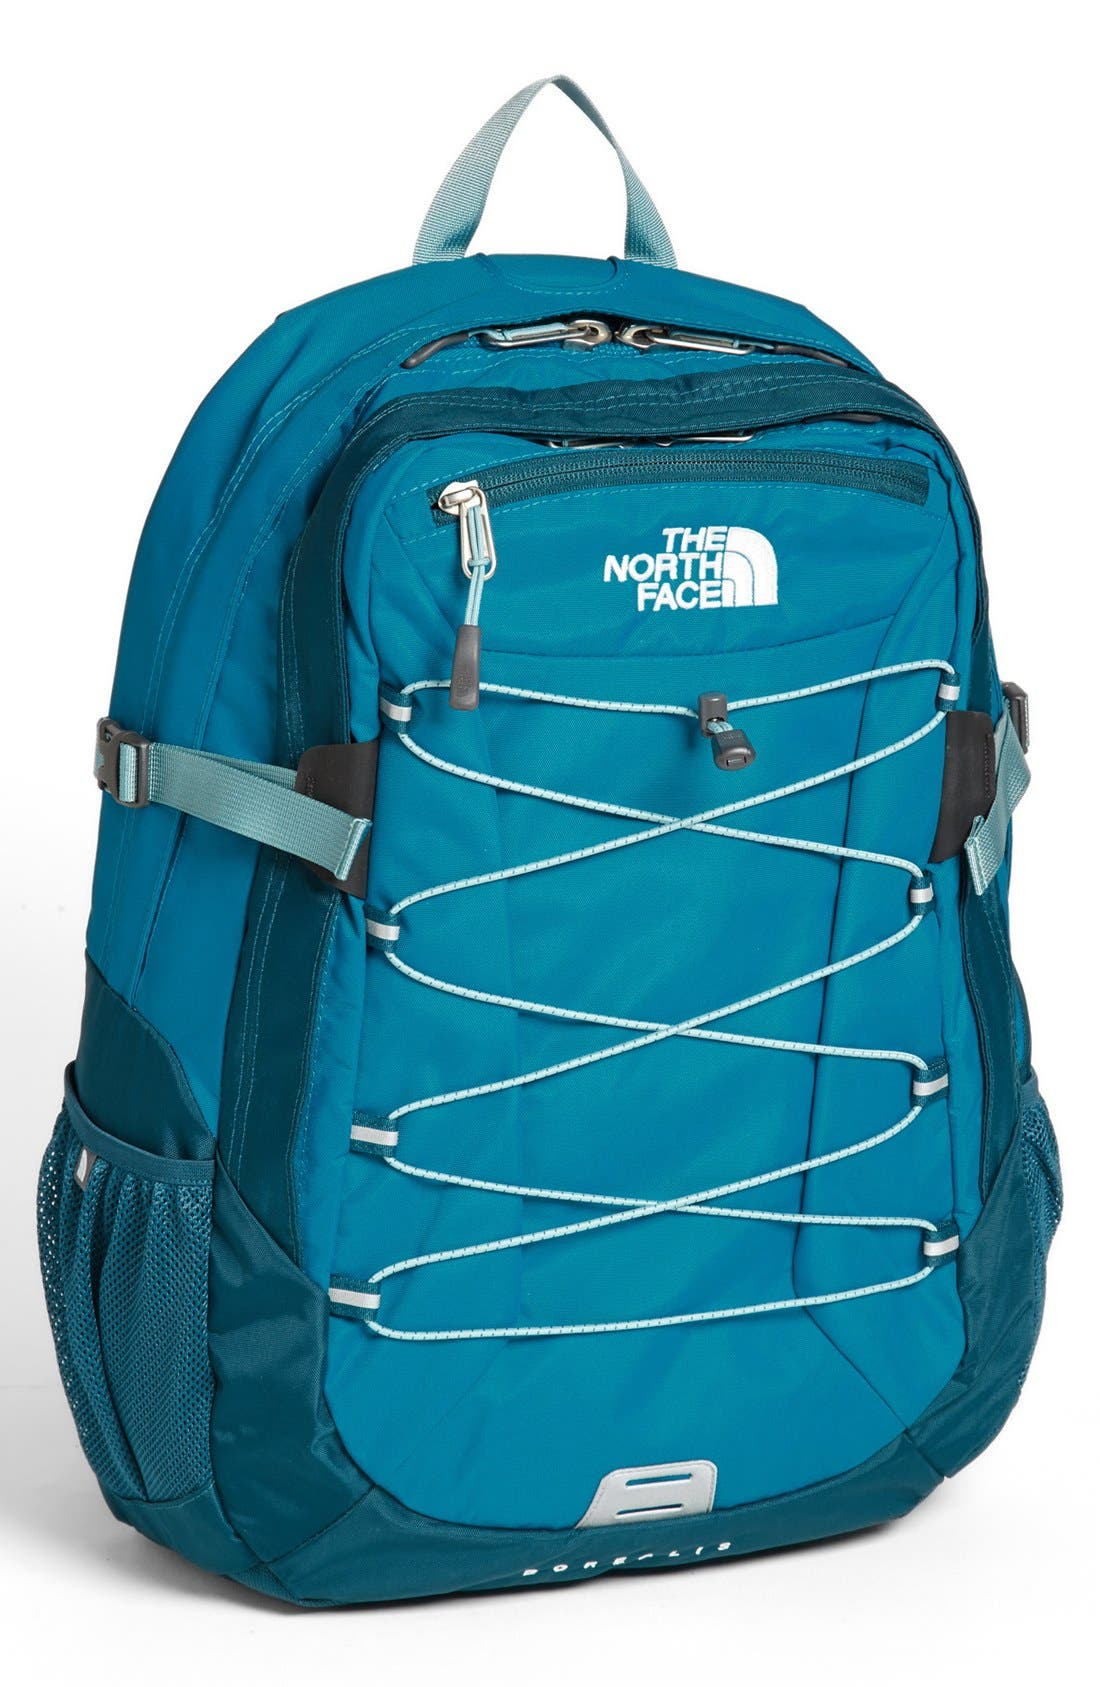 Alternate Image 1 Selected - The North Face 'Borealis' Backpack